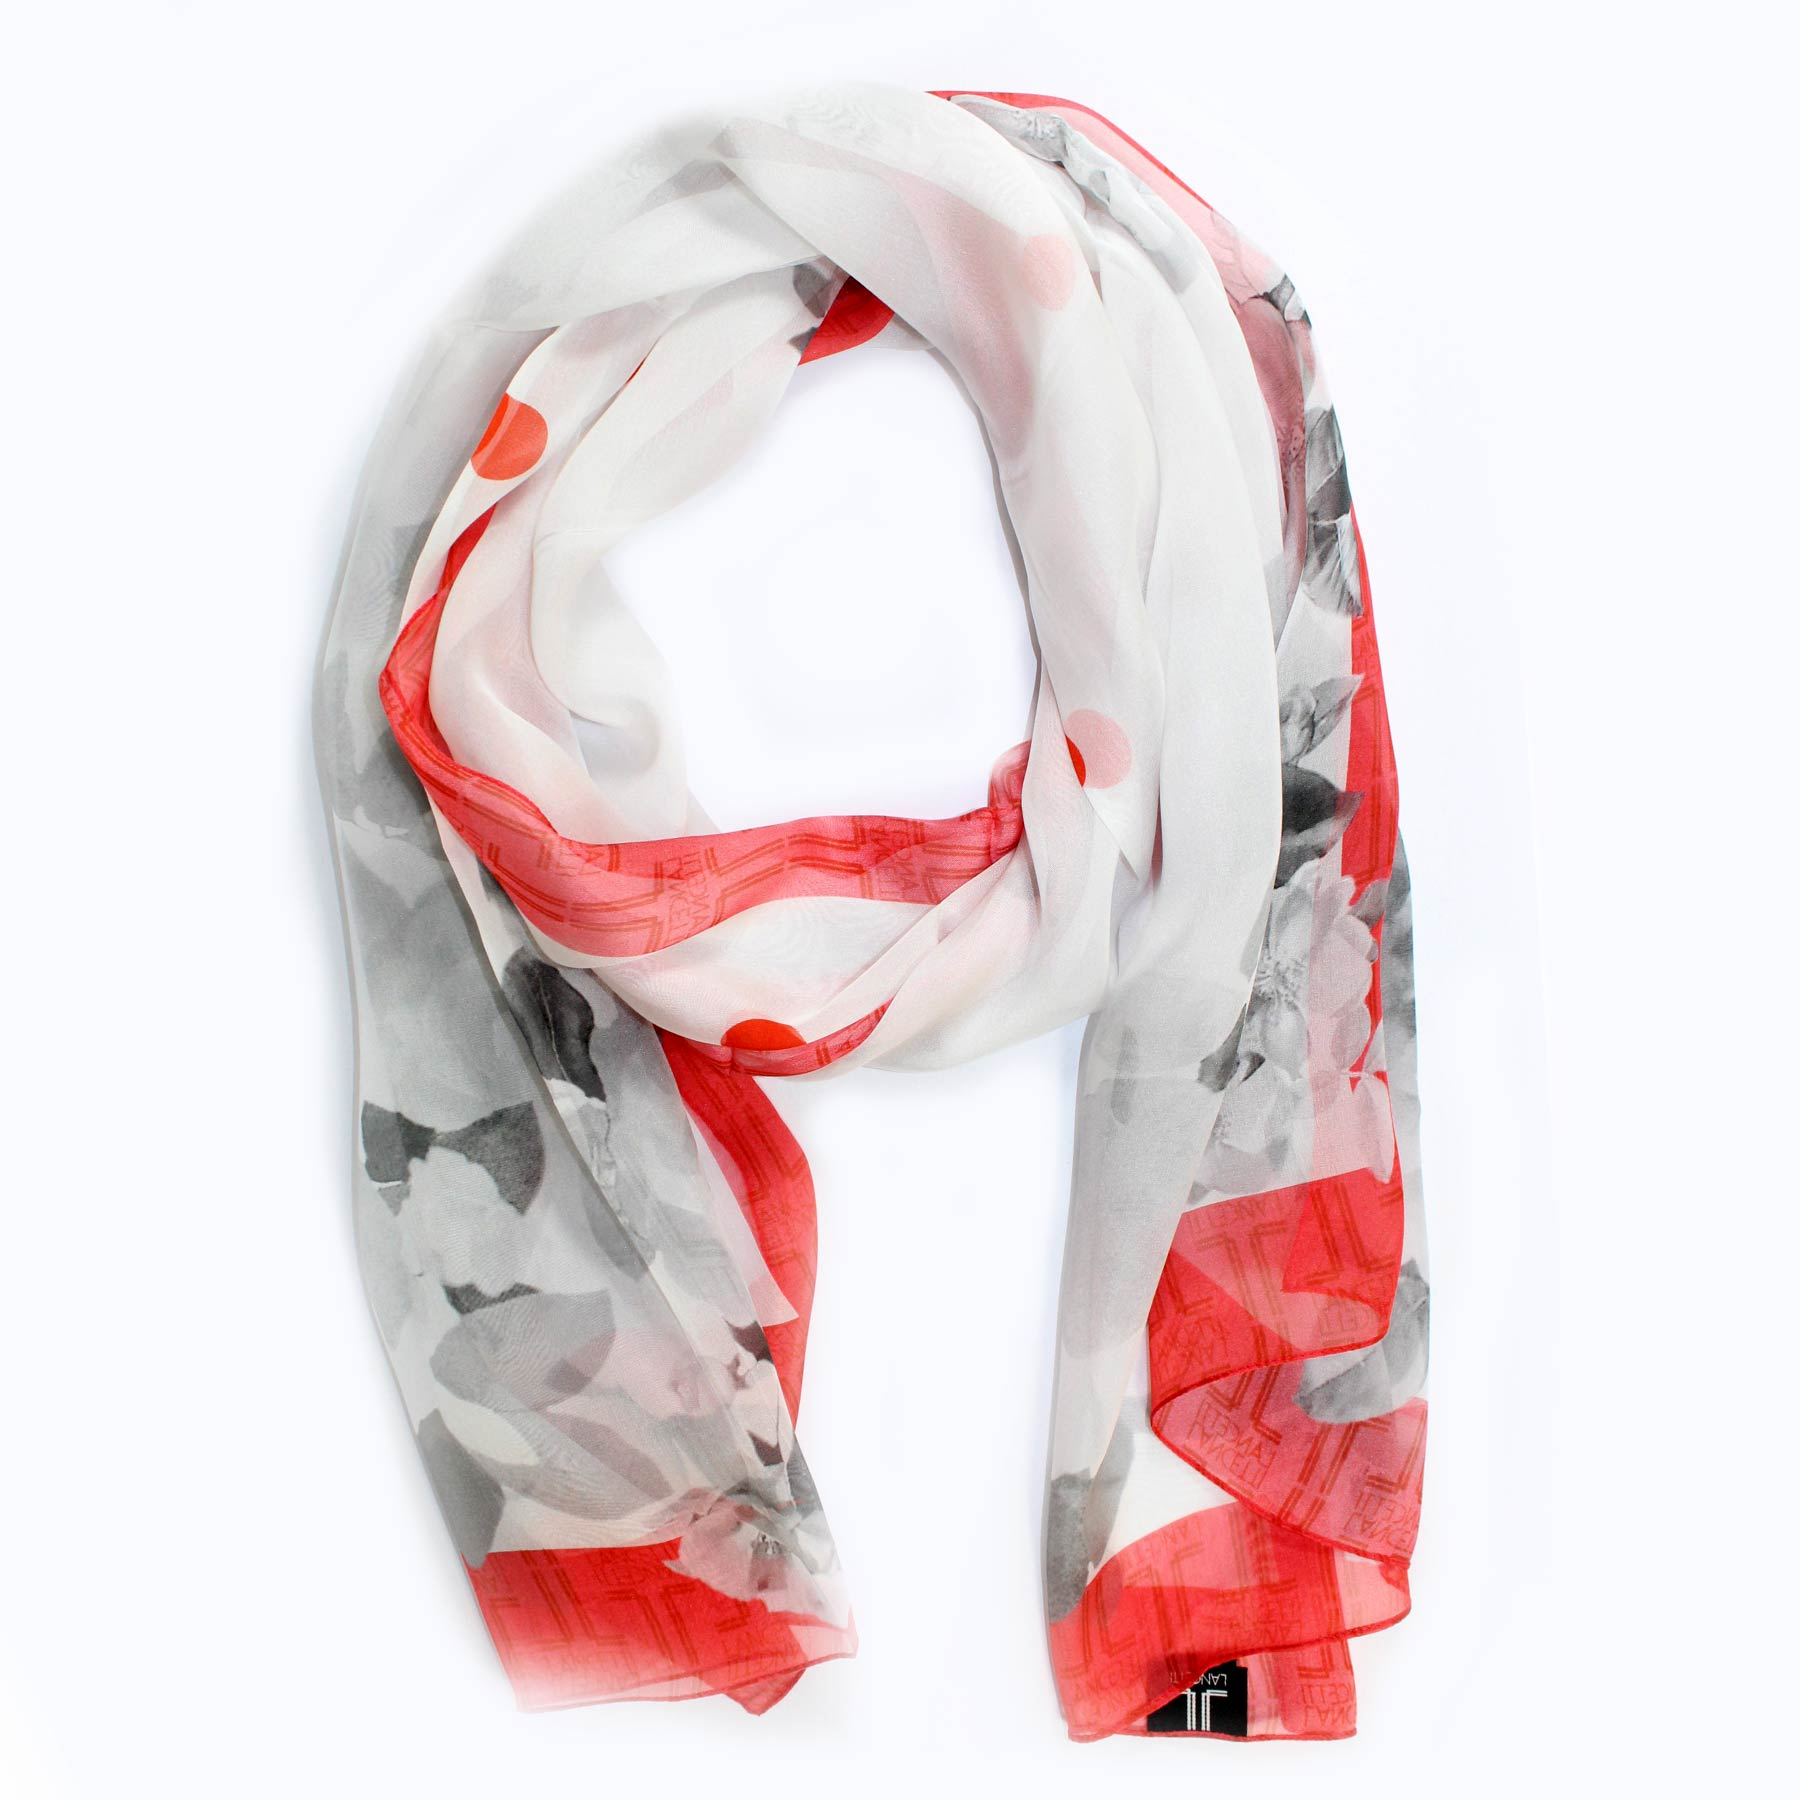 Lancetti Scarf Gray White Floral Red Border - Chiffon Silk Shawl - Made In Italy